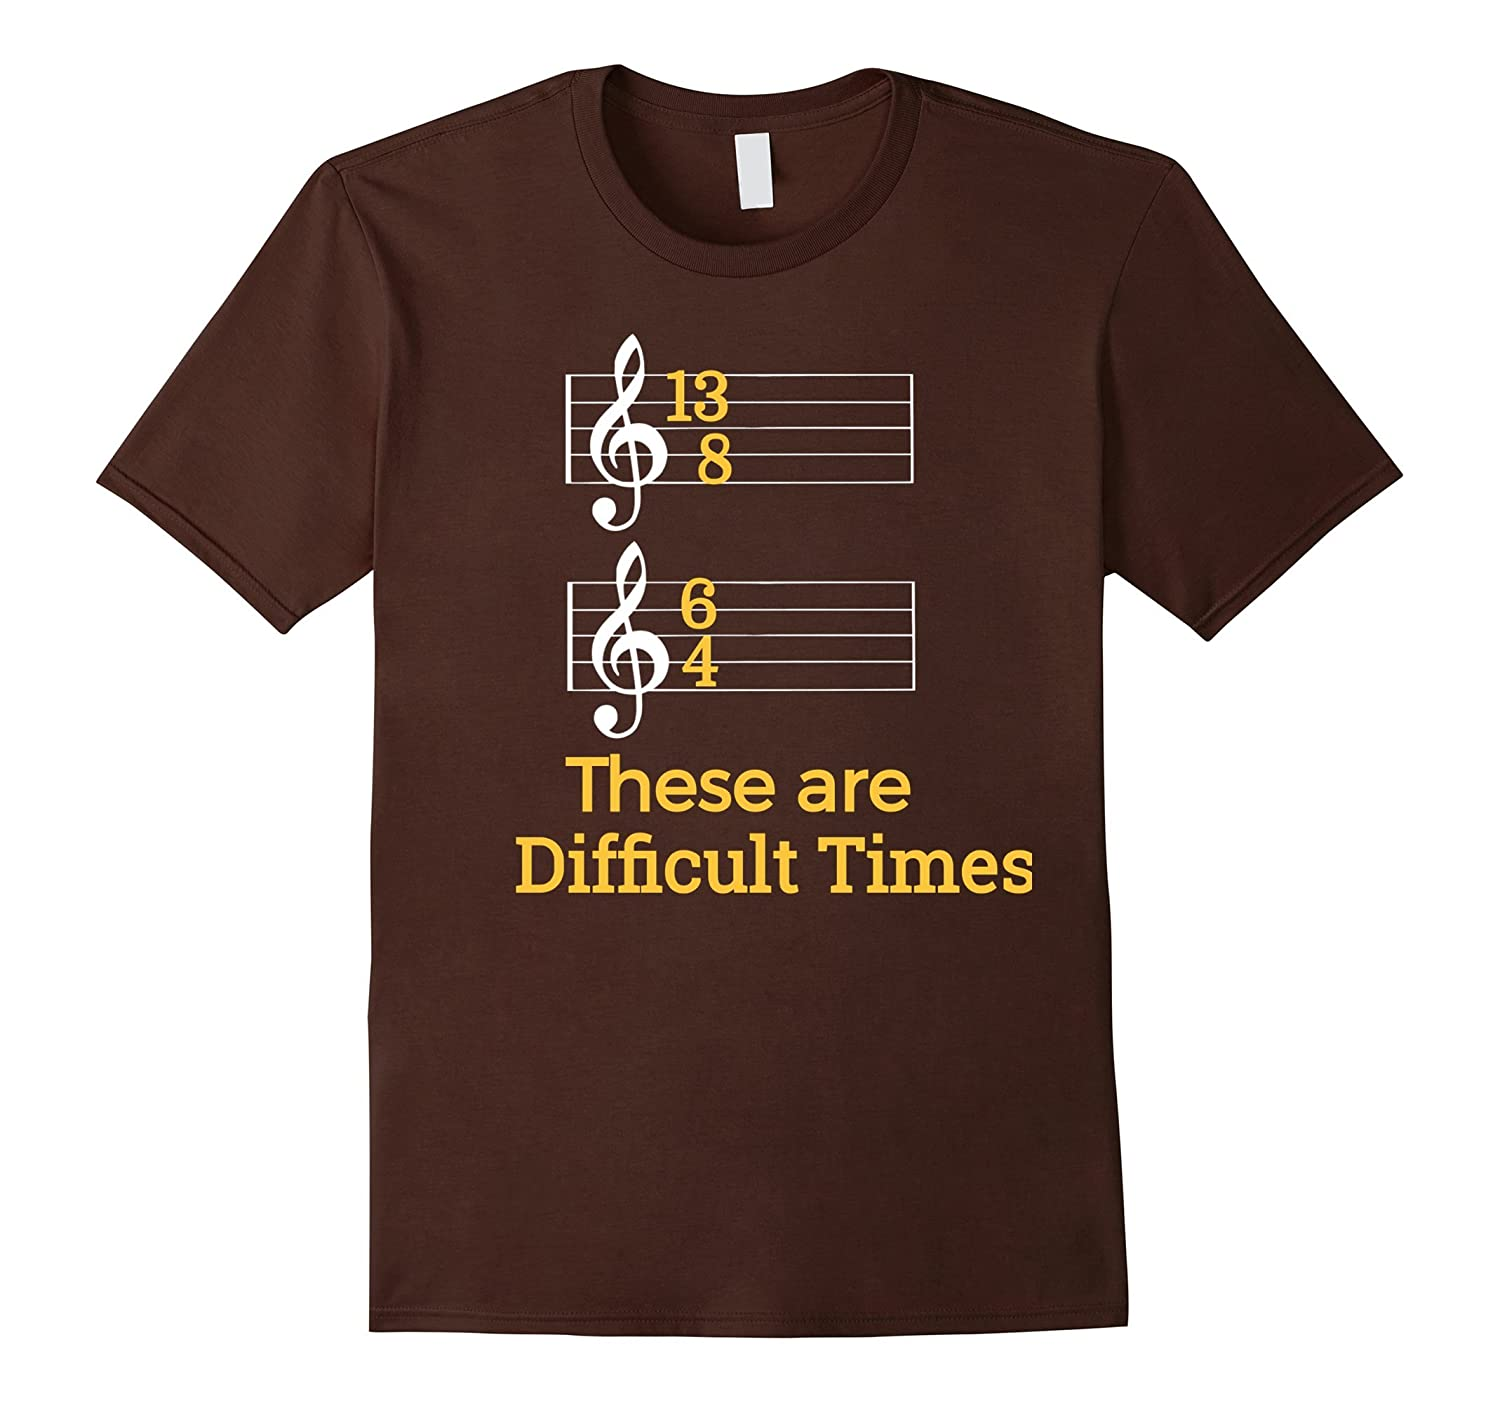 ef0f3dadb These are Difficult Times Funny Pun Parody Tee for Musicians-CL ...